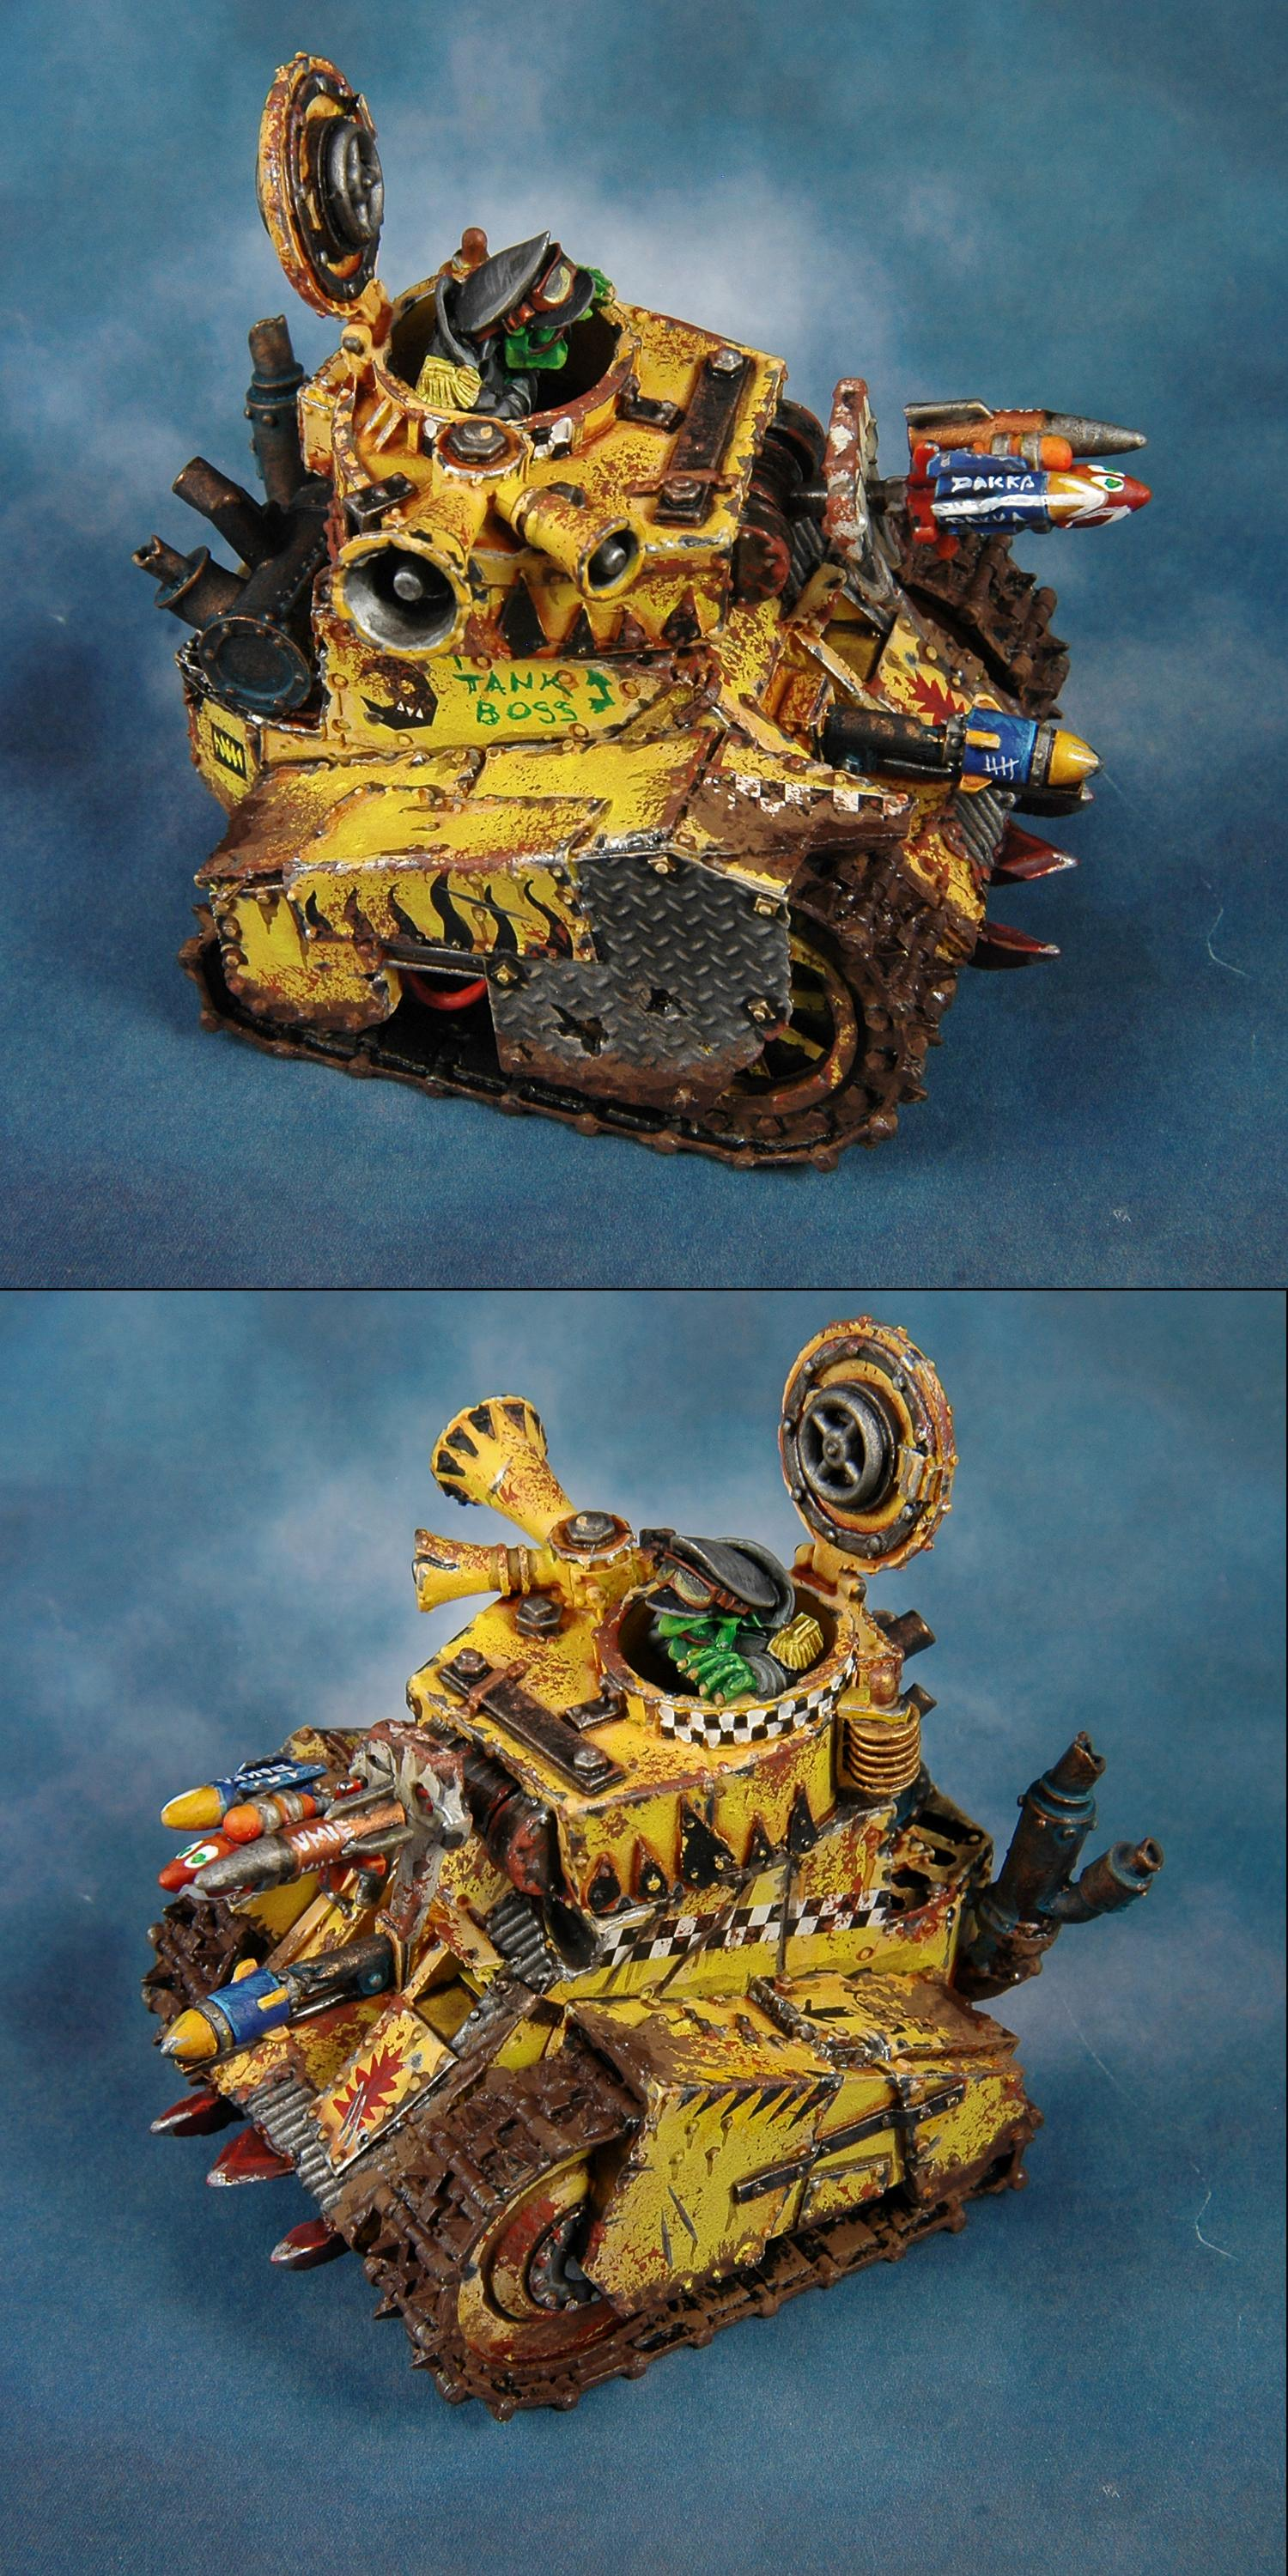 Bad Moons, Forge World, Grot Tank, Orks, Warhammer 40,000